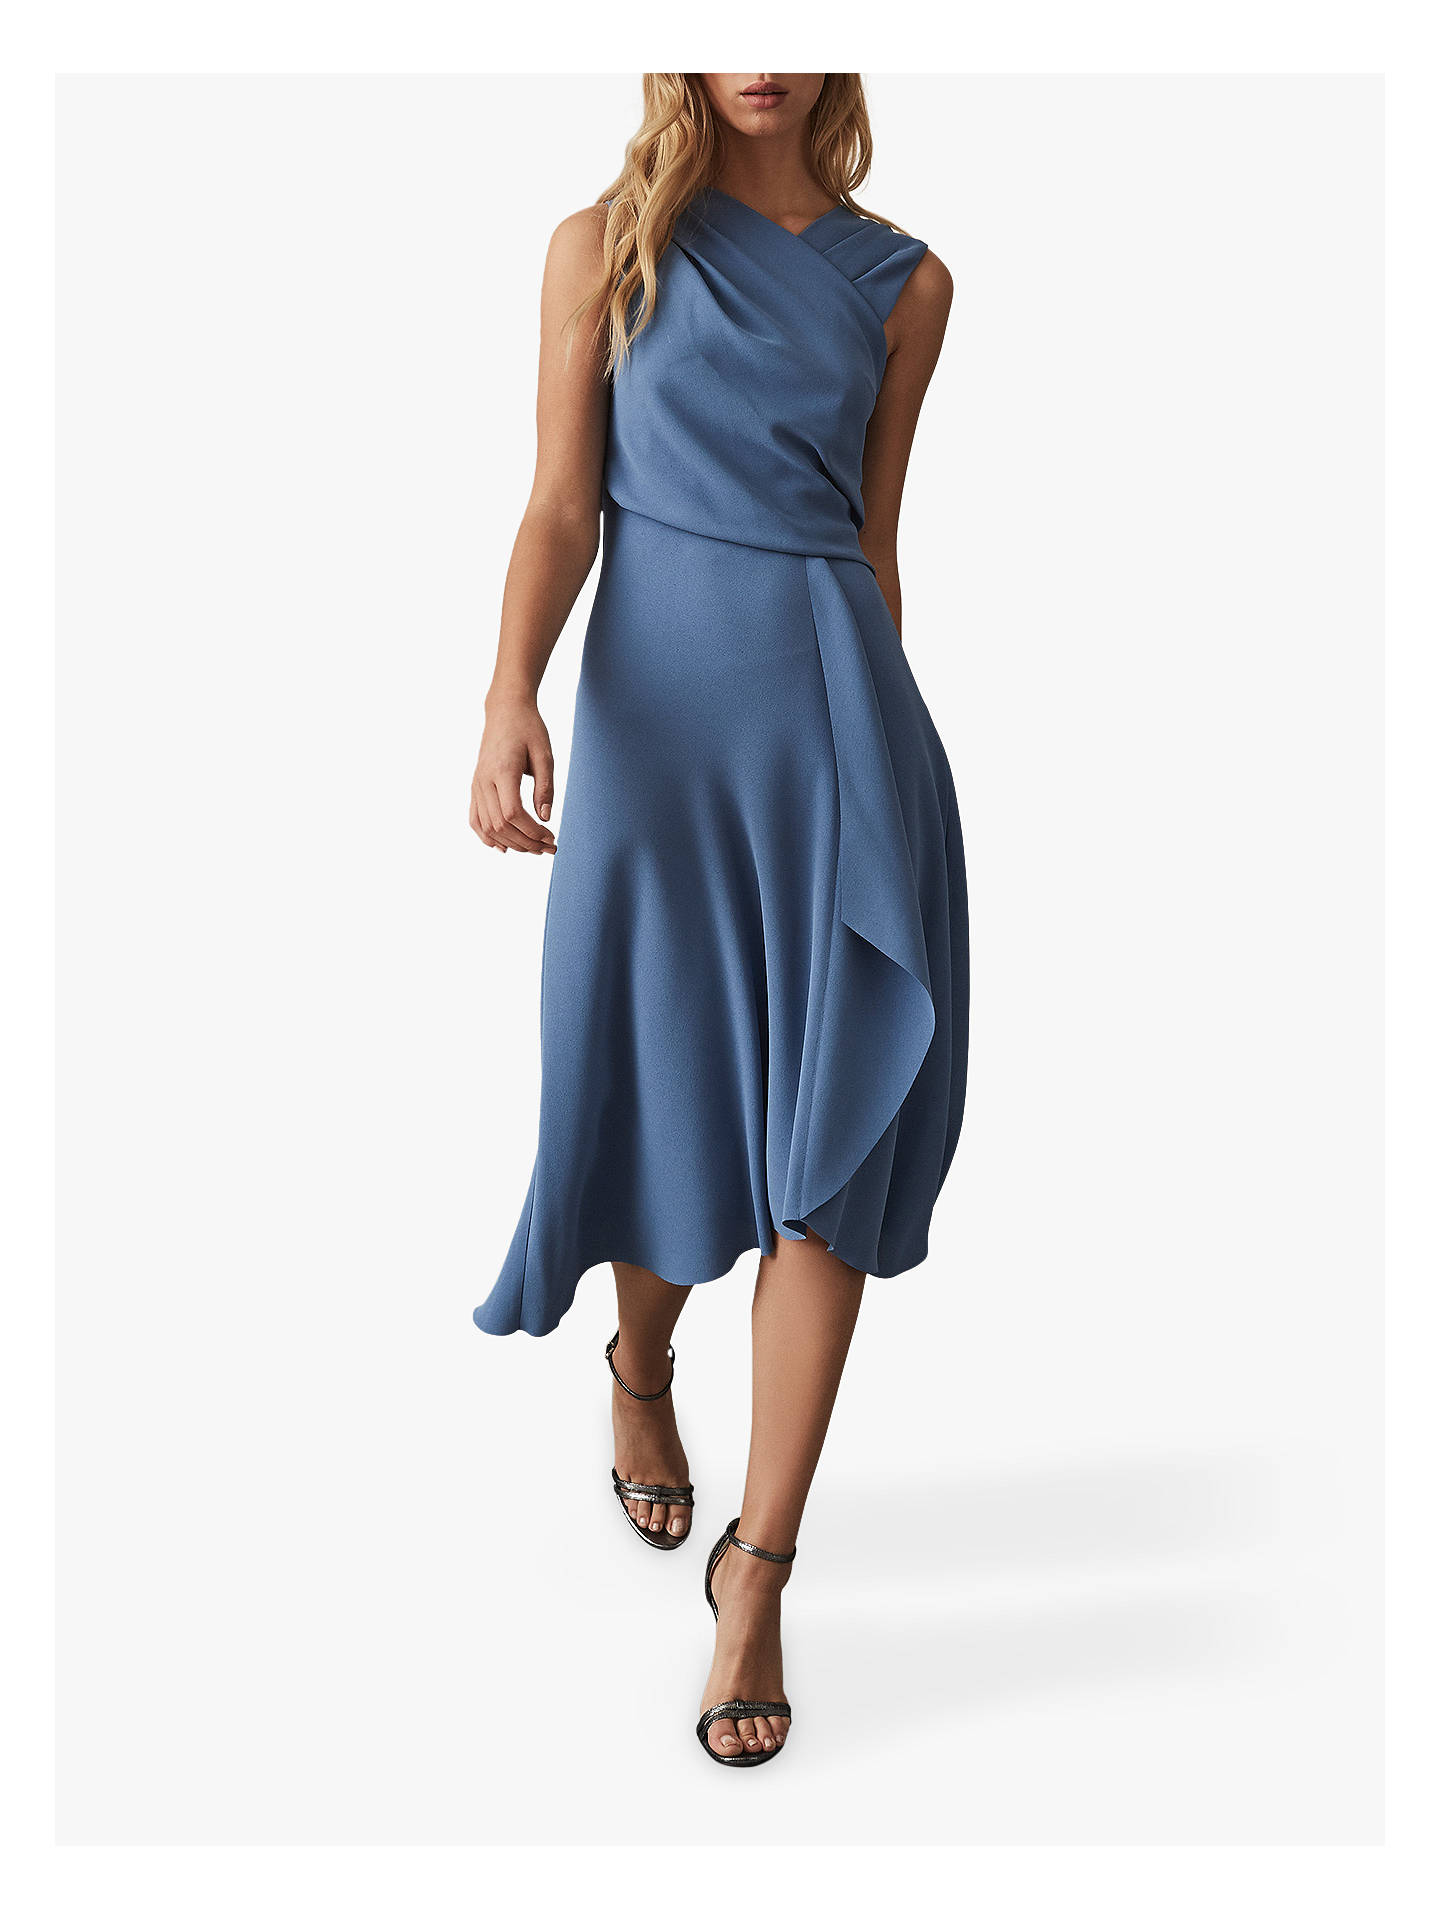 john lewis reiss dress